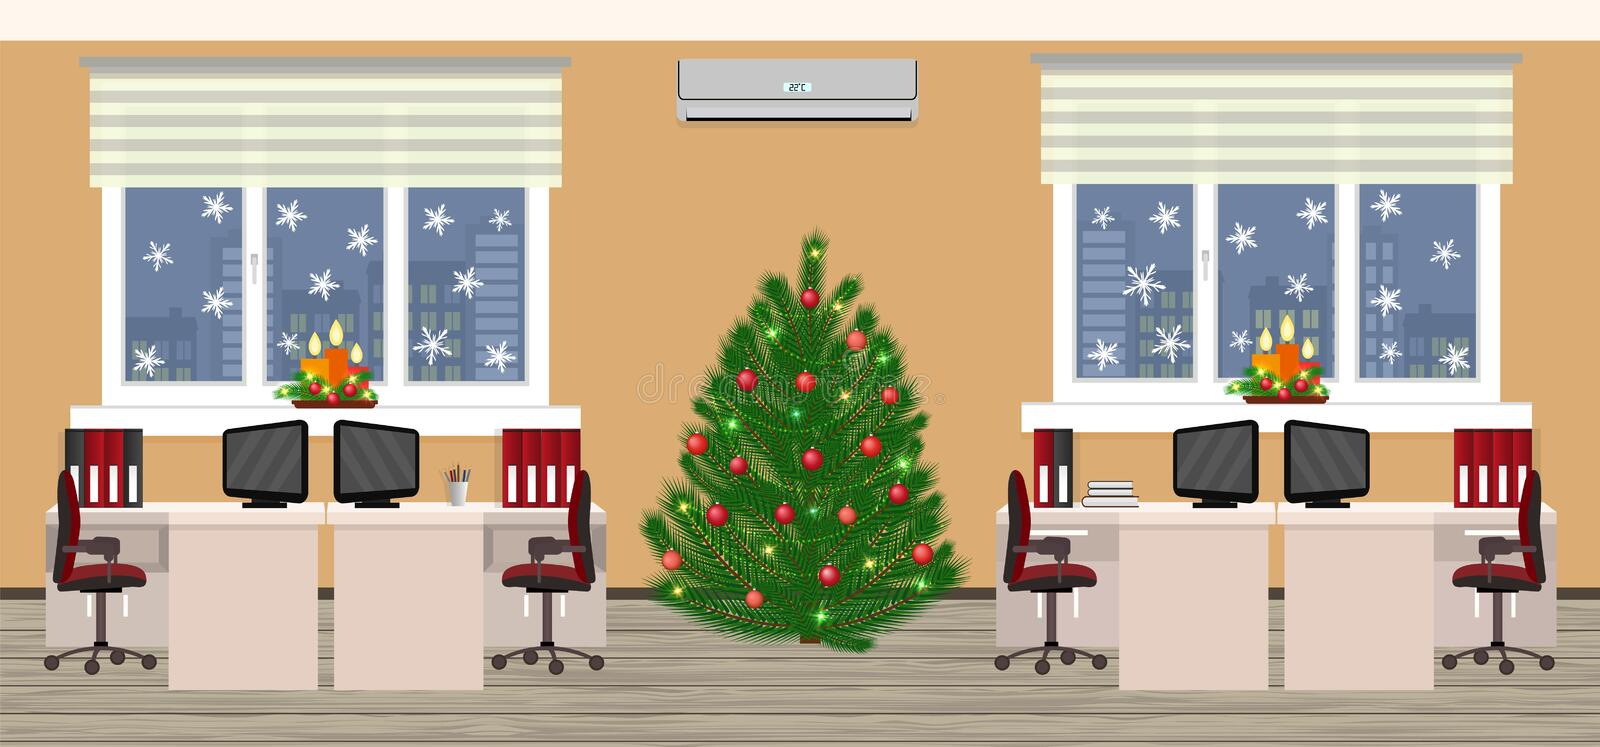 Office room interior in christmas design with two work spaces at evening before xmas. Holiday eve in company office. vector illustration